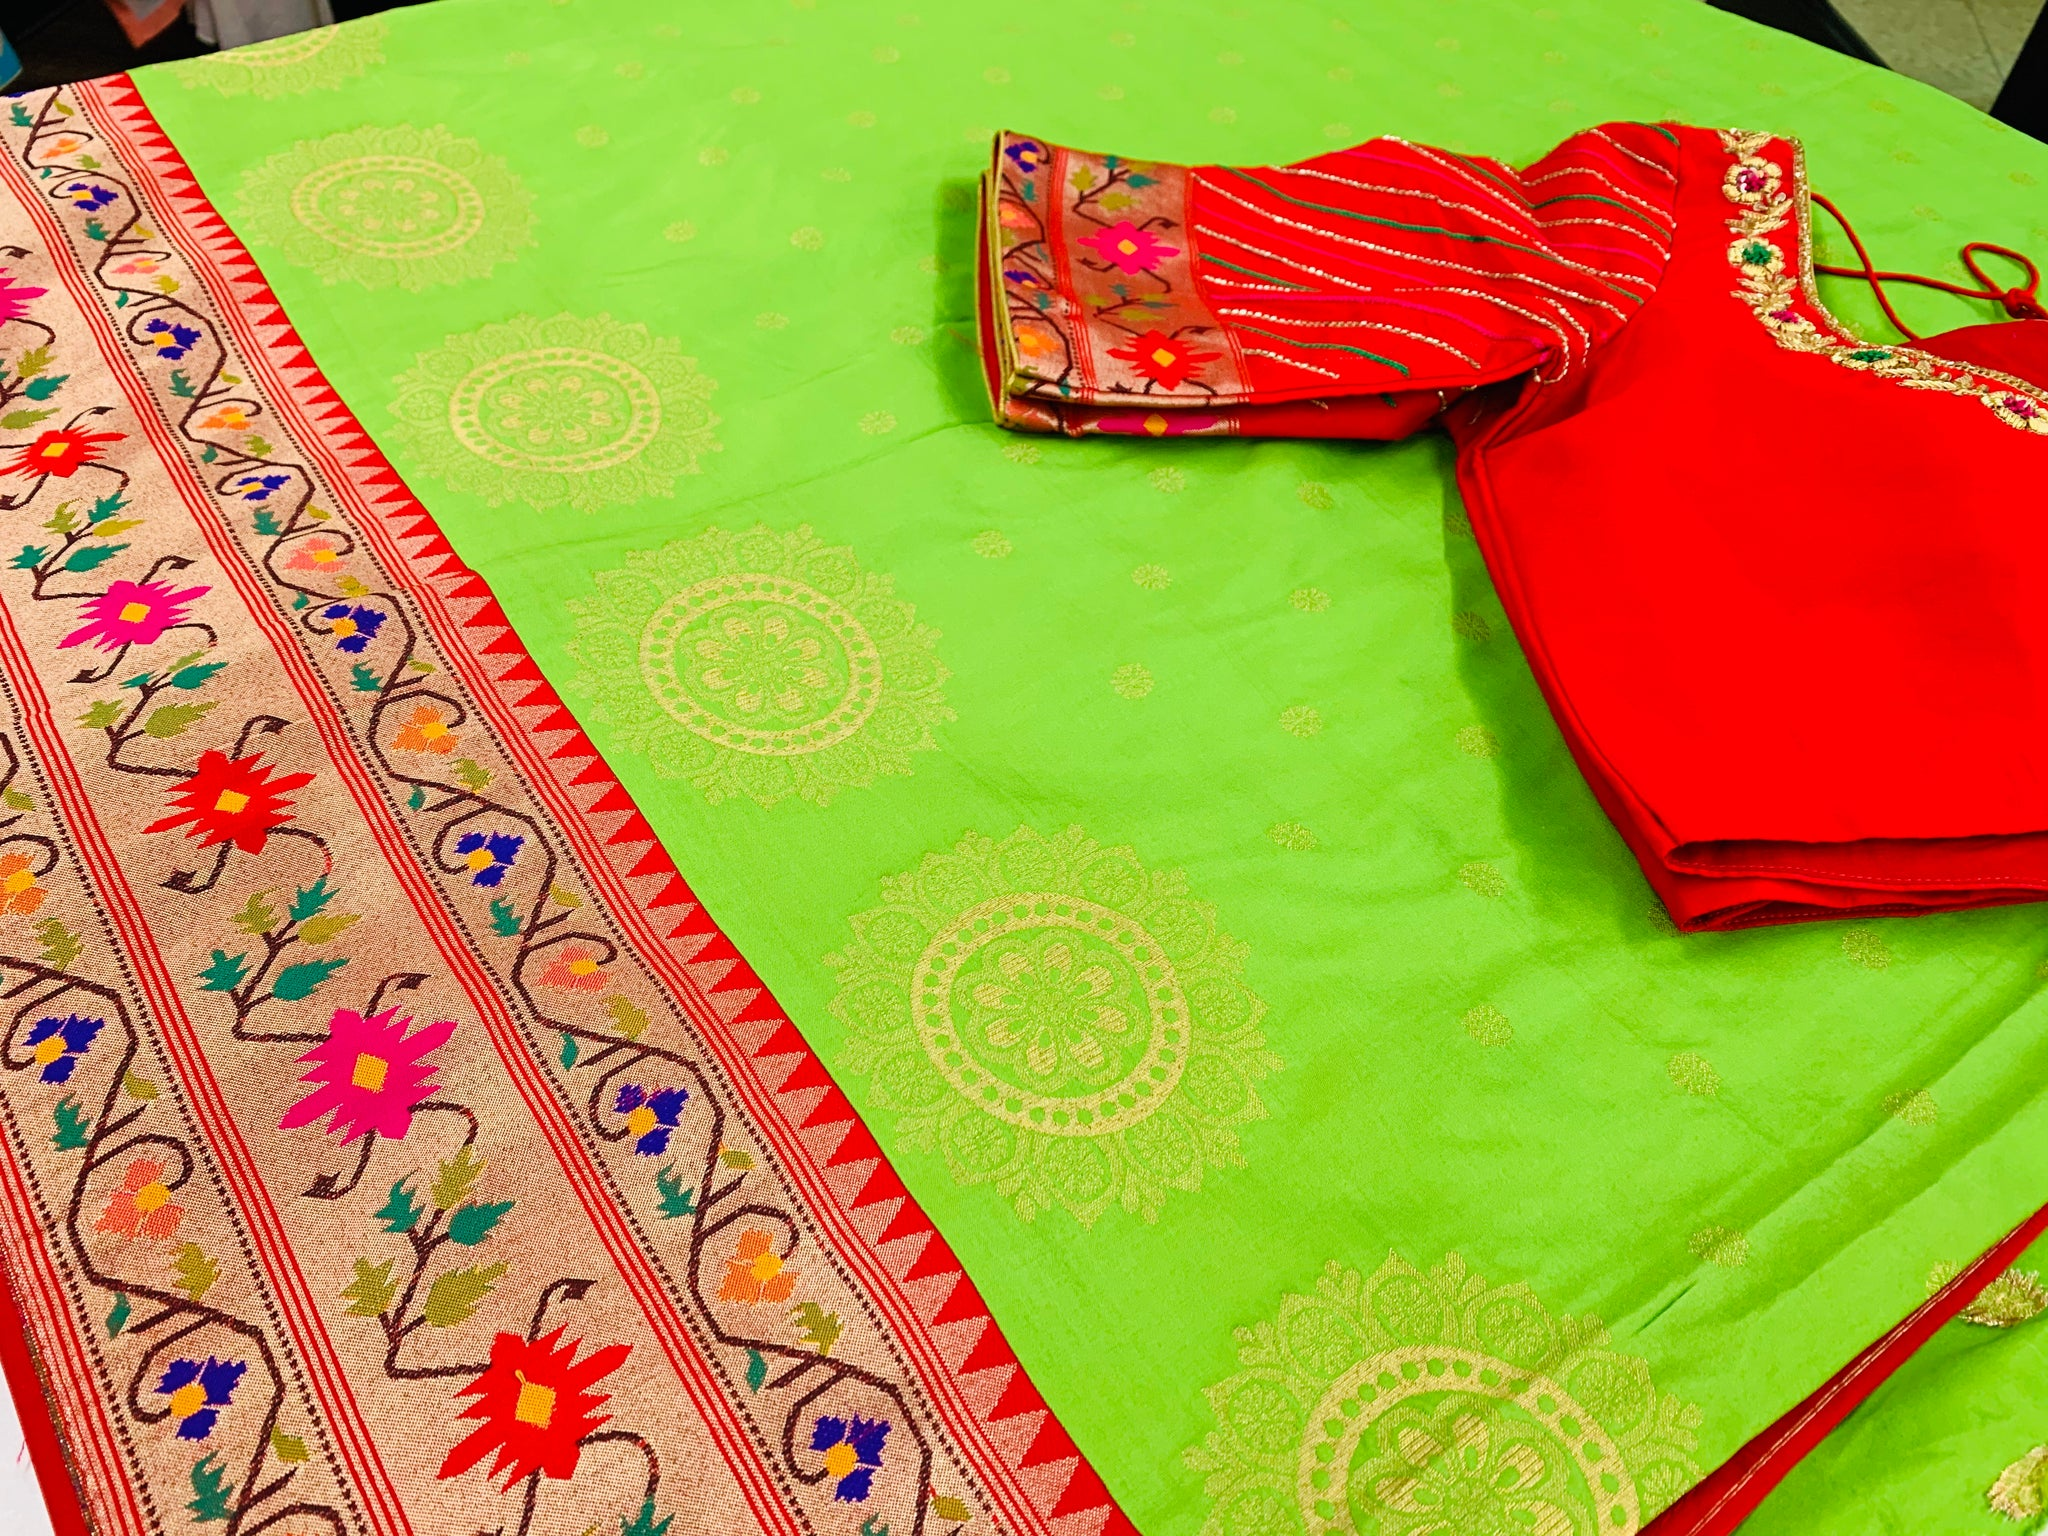 Green and Red Banaras Paithani Saree